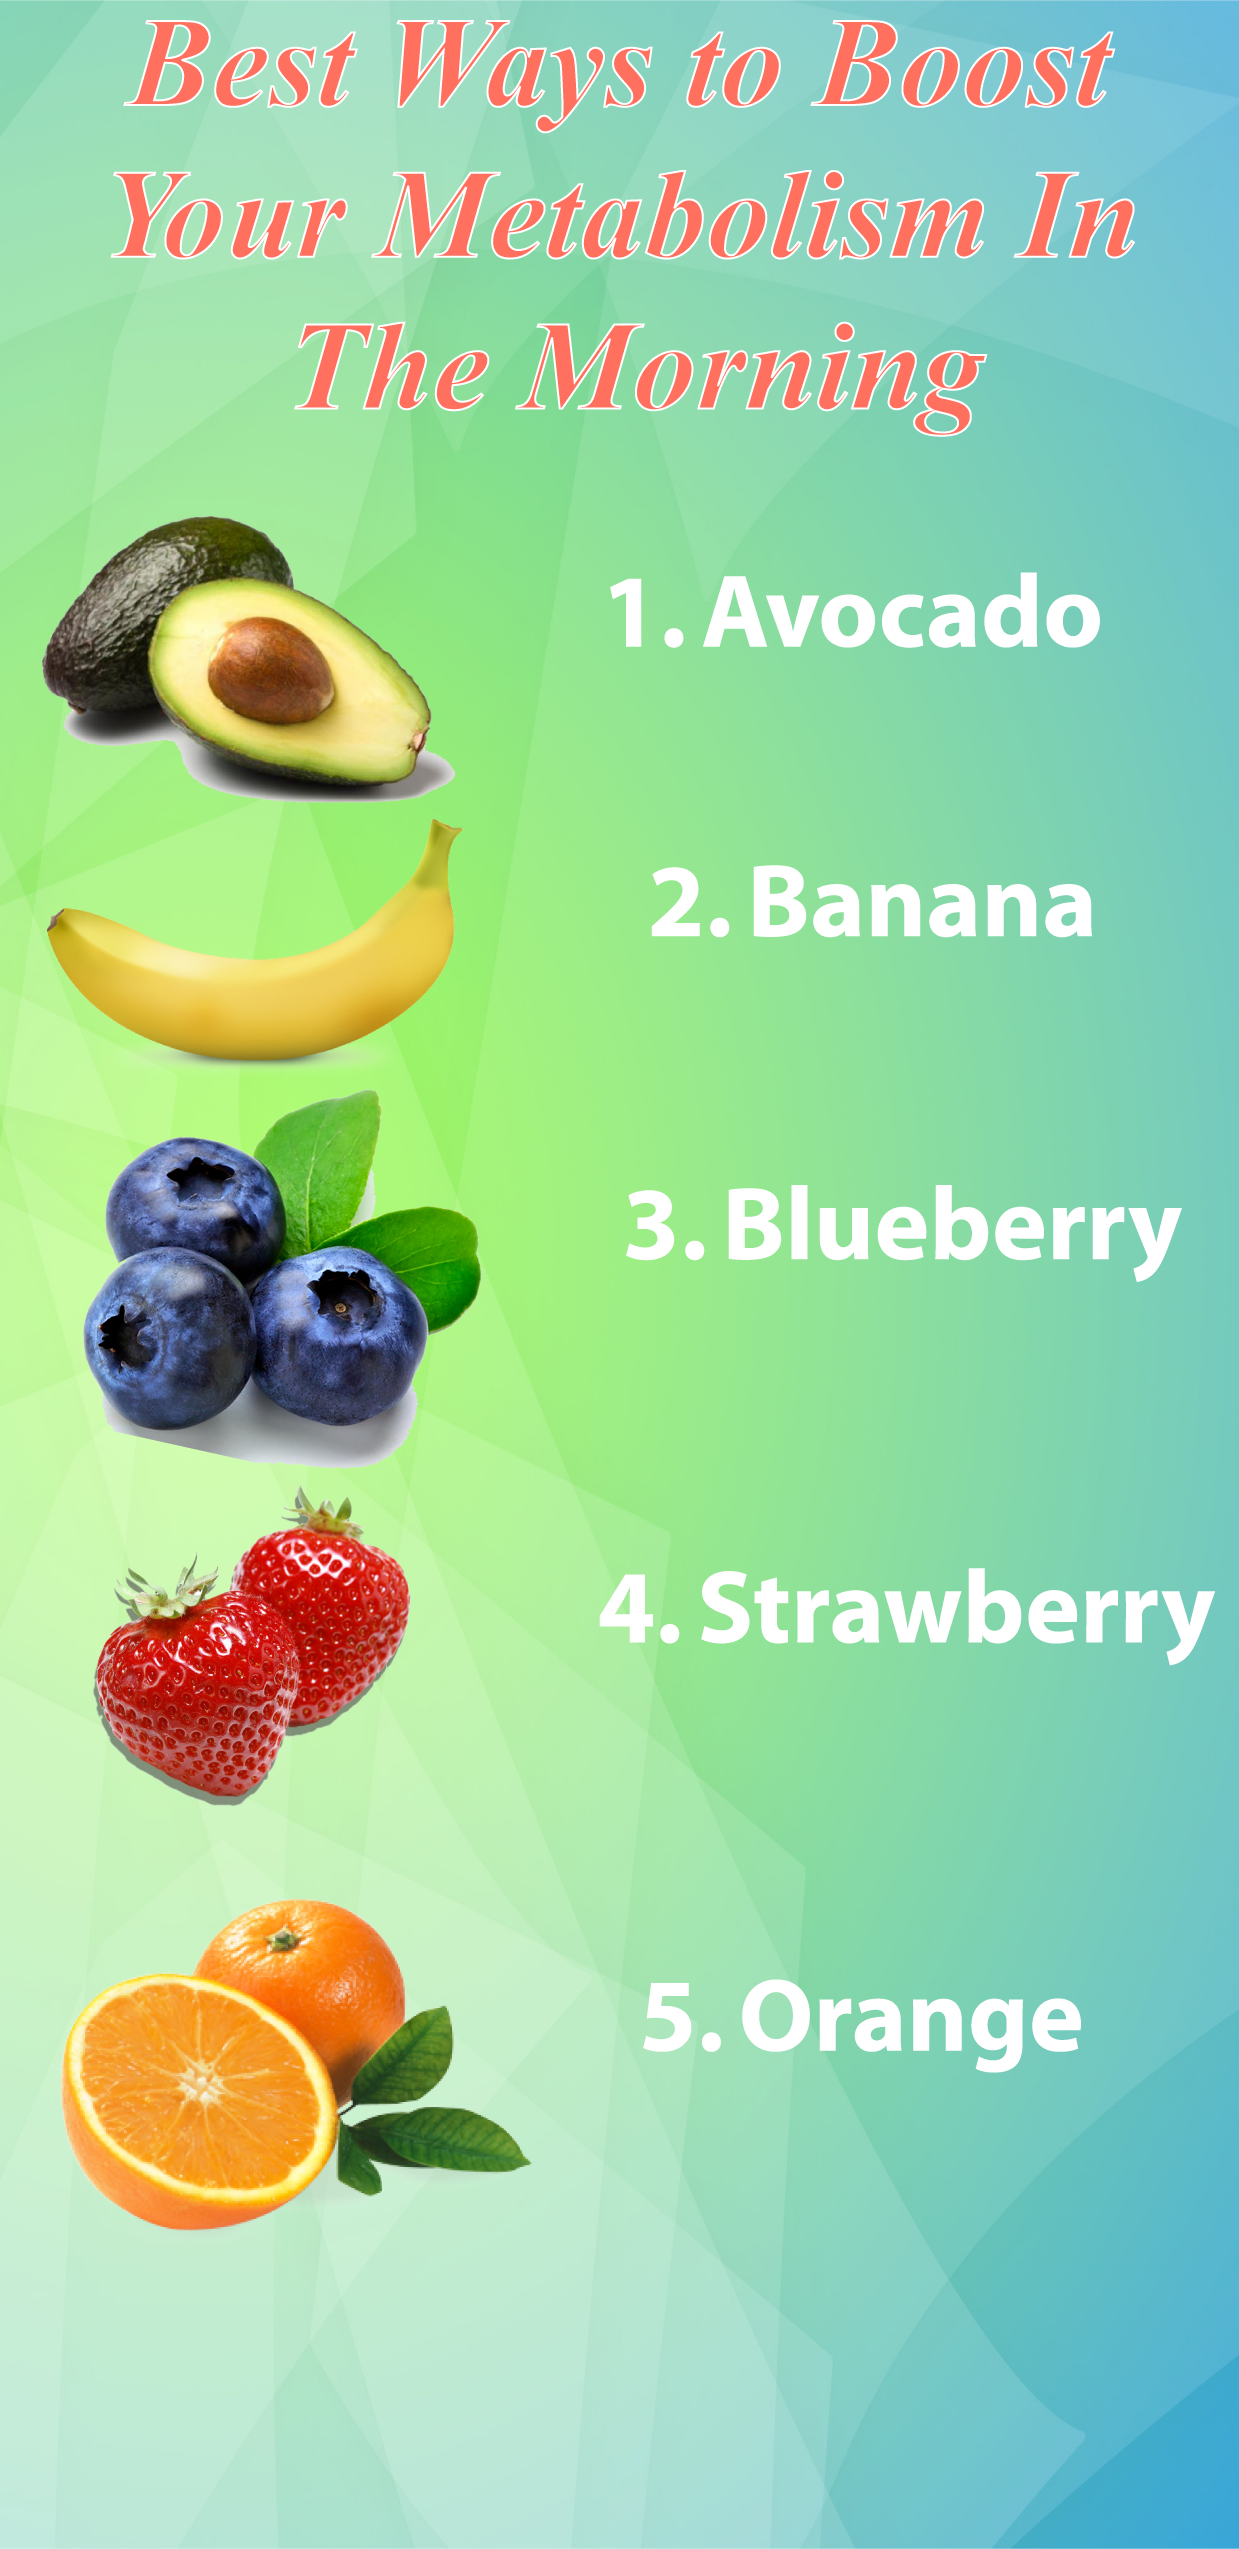 6 Best Ways to Boost Your Metabolism In The Morning